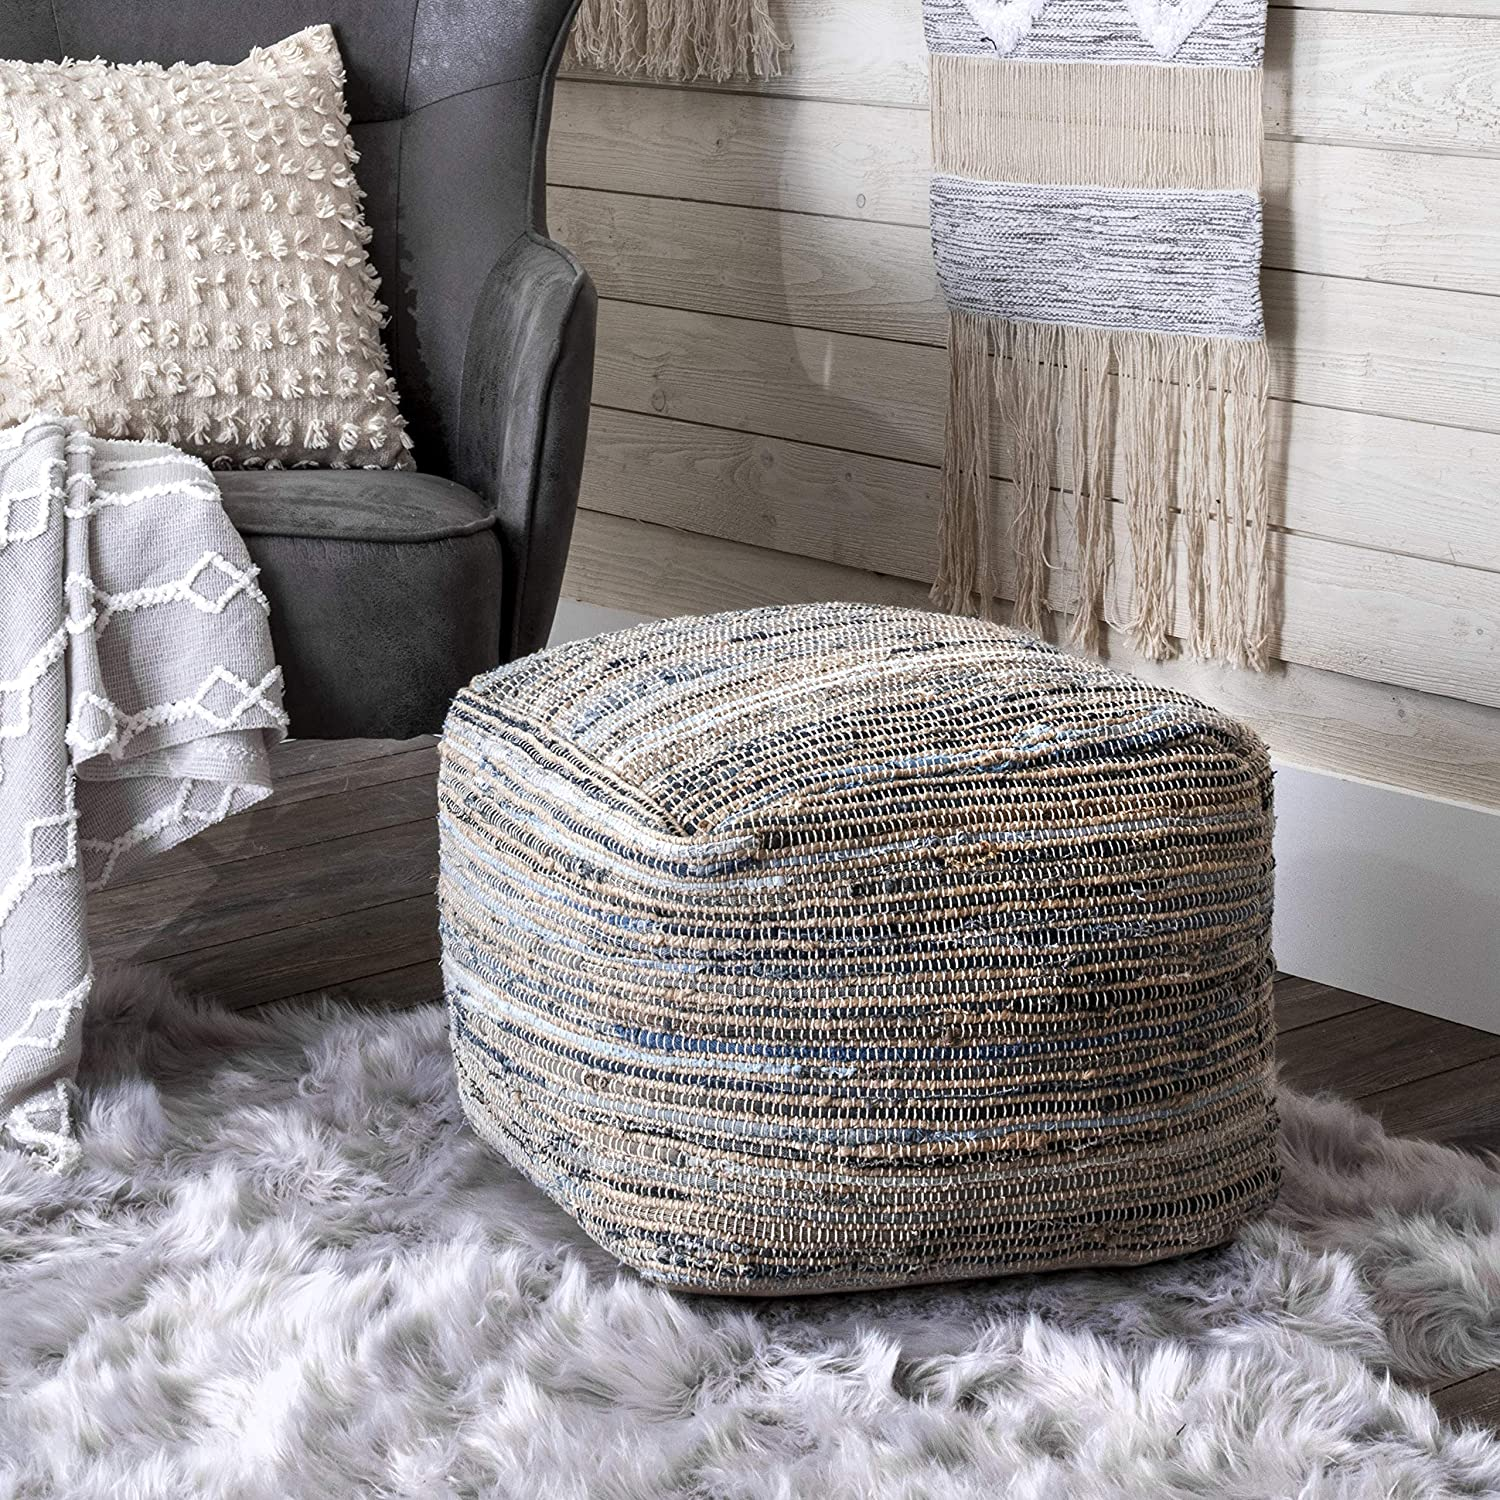 nuLOOM Granada Knitted Casual All stores are sold Denim Sale item Ottoman Jute Pouf and